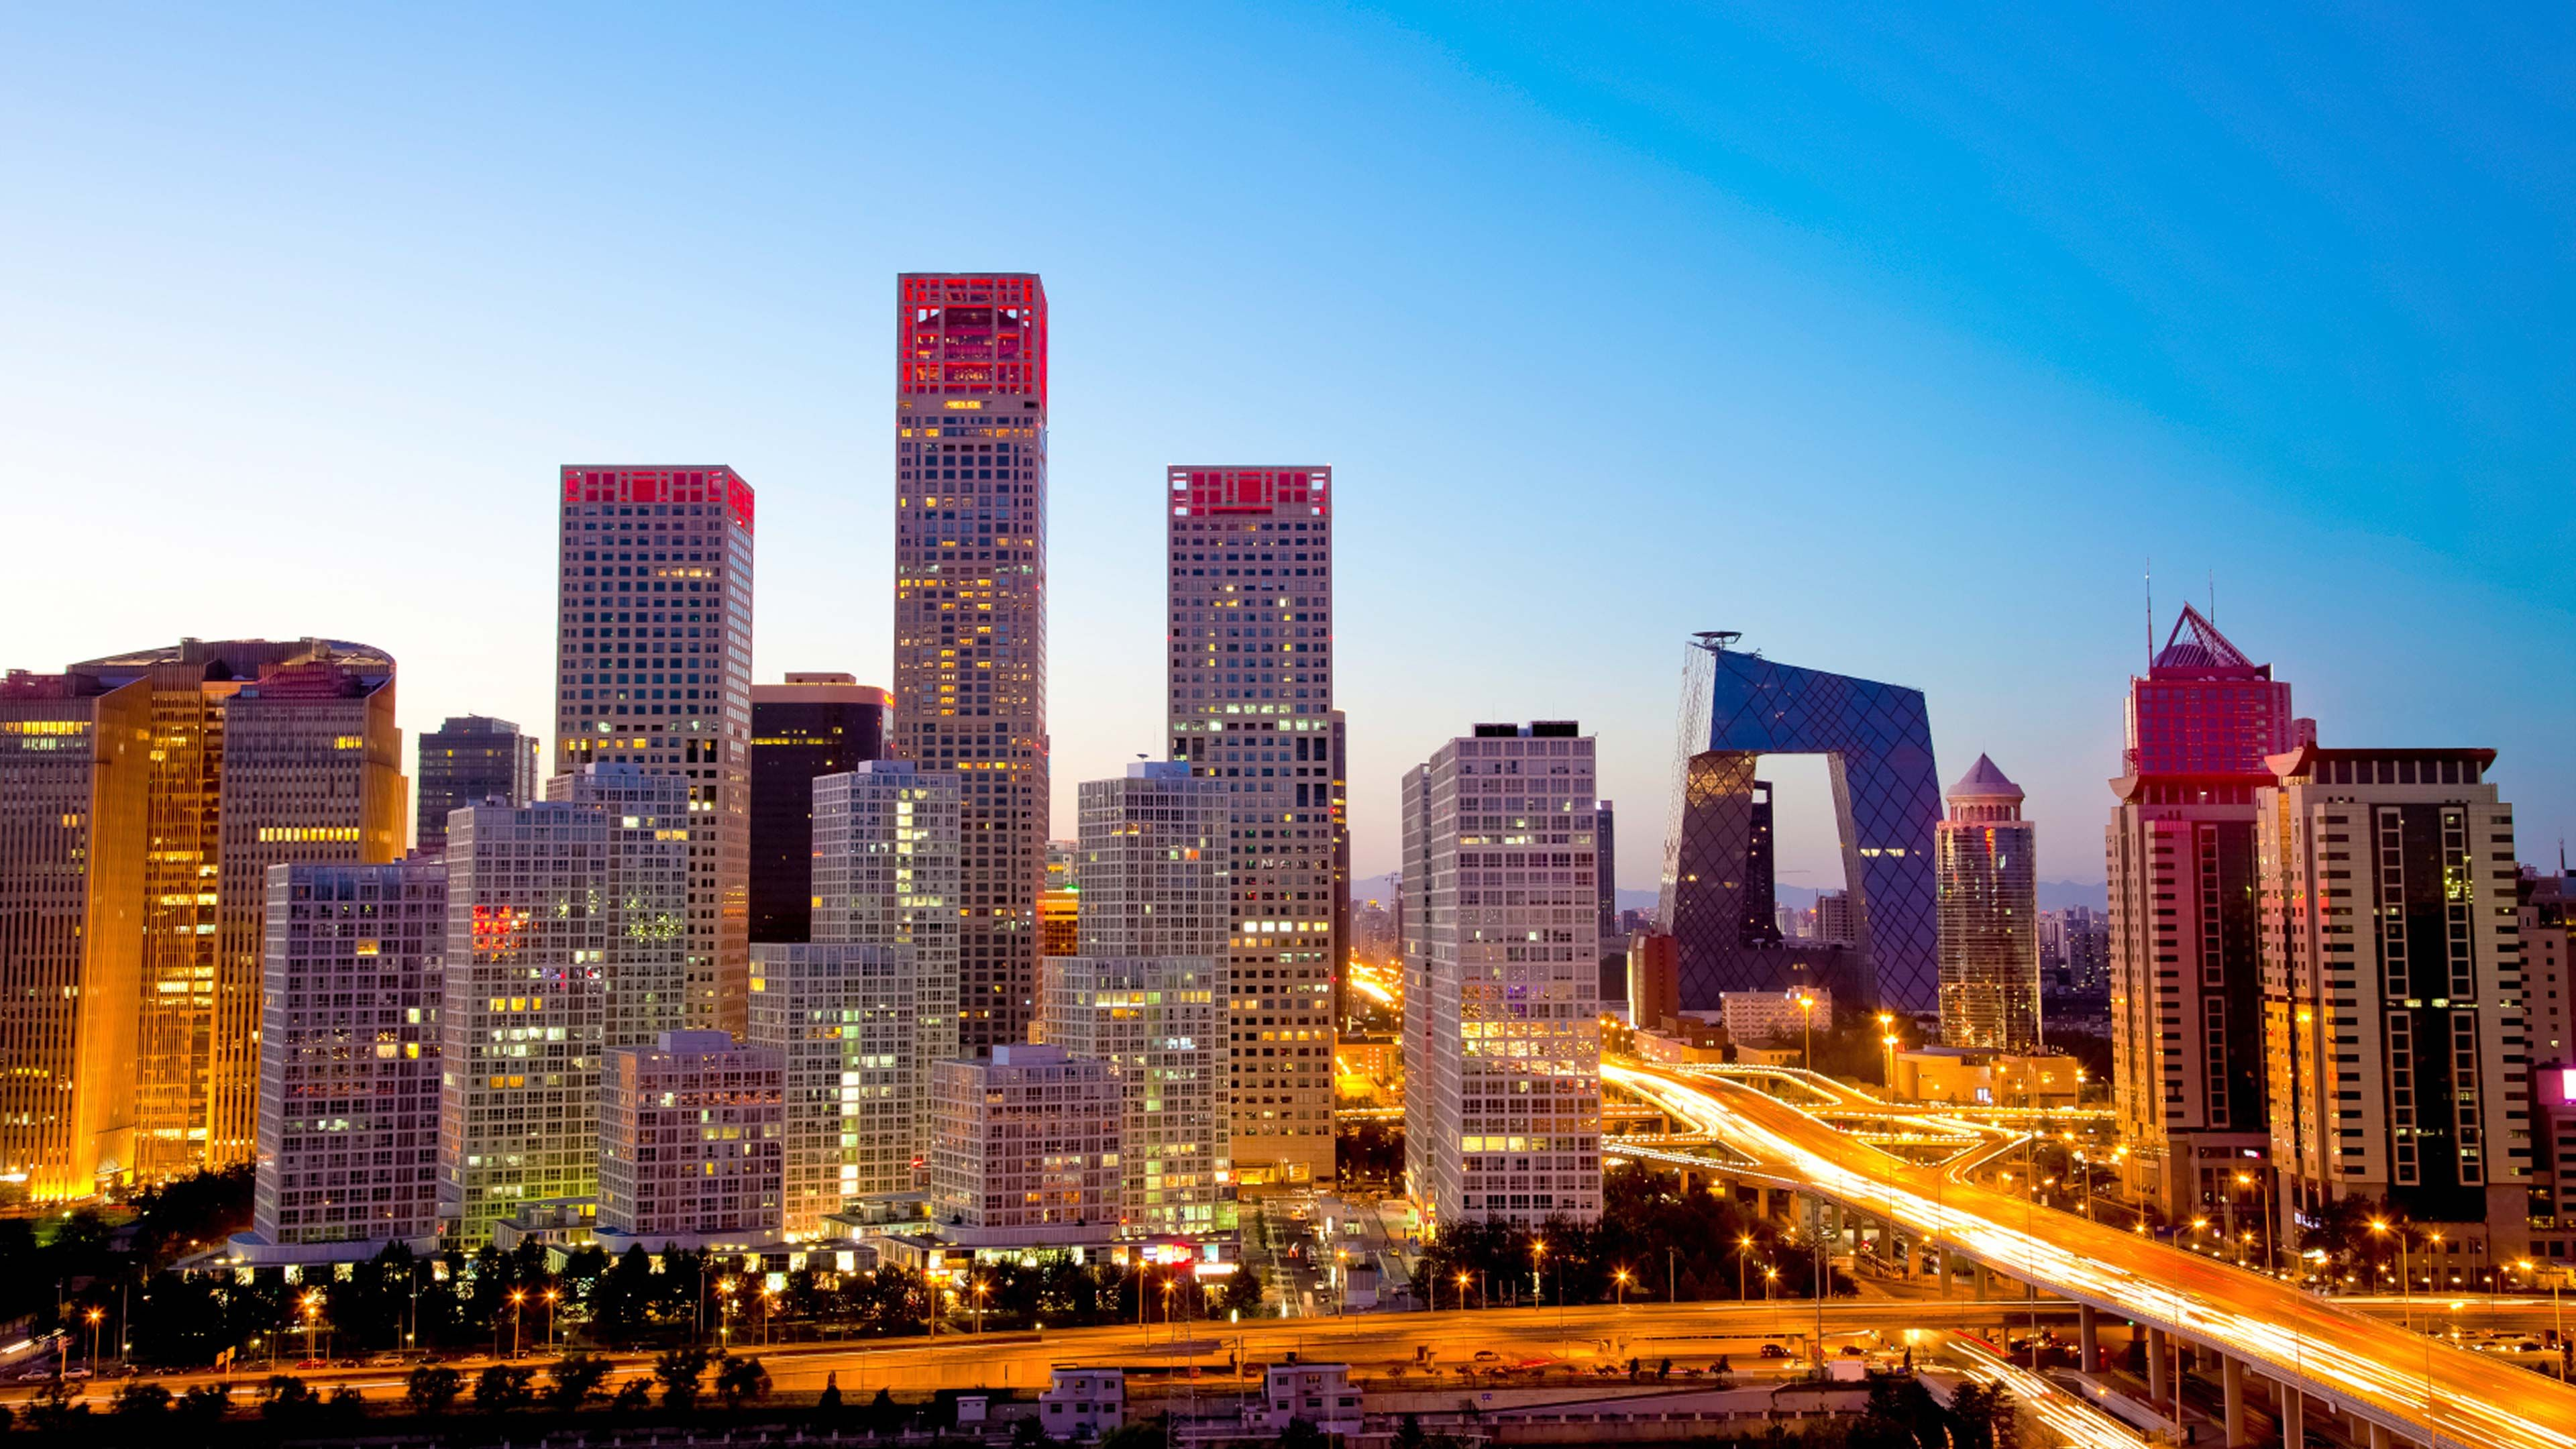 Beijing, China's massive capital, has history stretching back hundreds of years Yet it's known as much for its modern architecture as its ancient sites such as the grand Forbidden City complex, the imperial palace during the Ming and Qing dynasties.